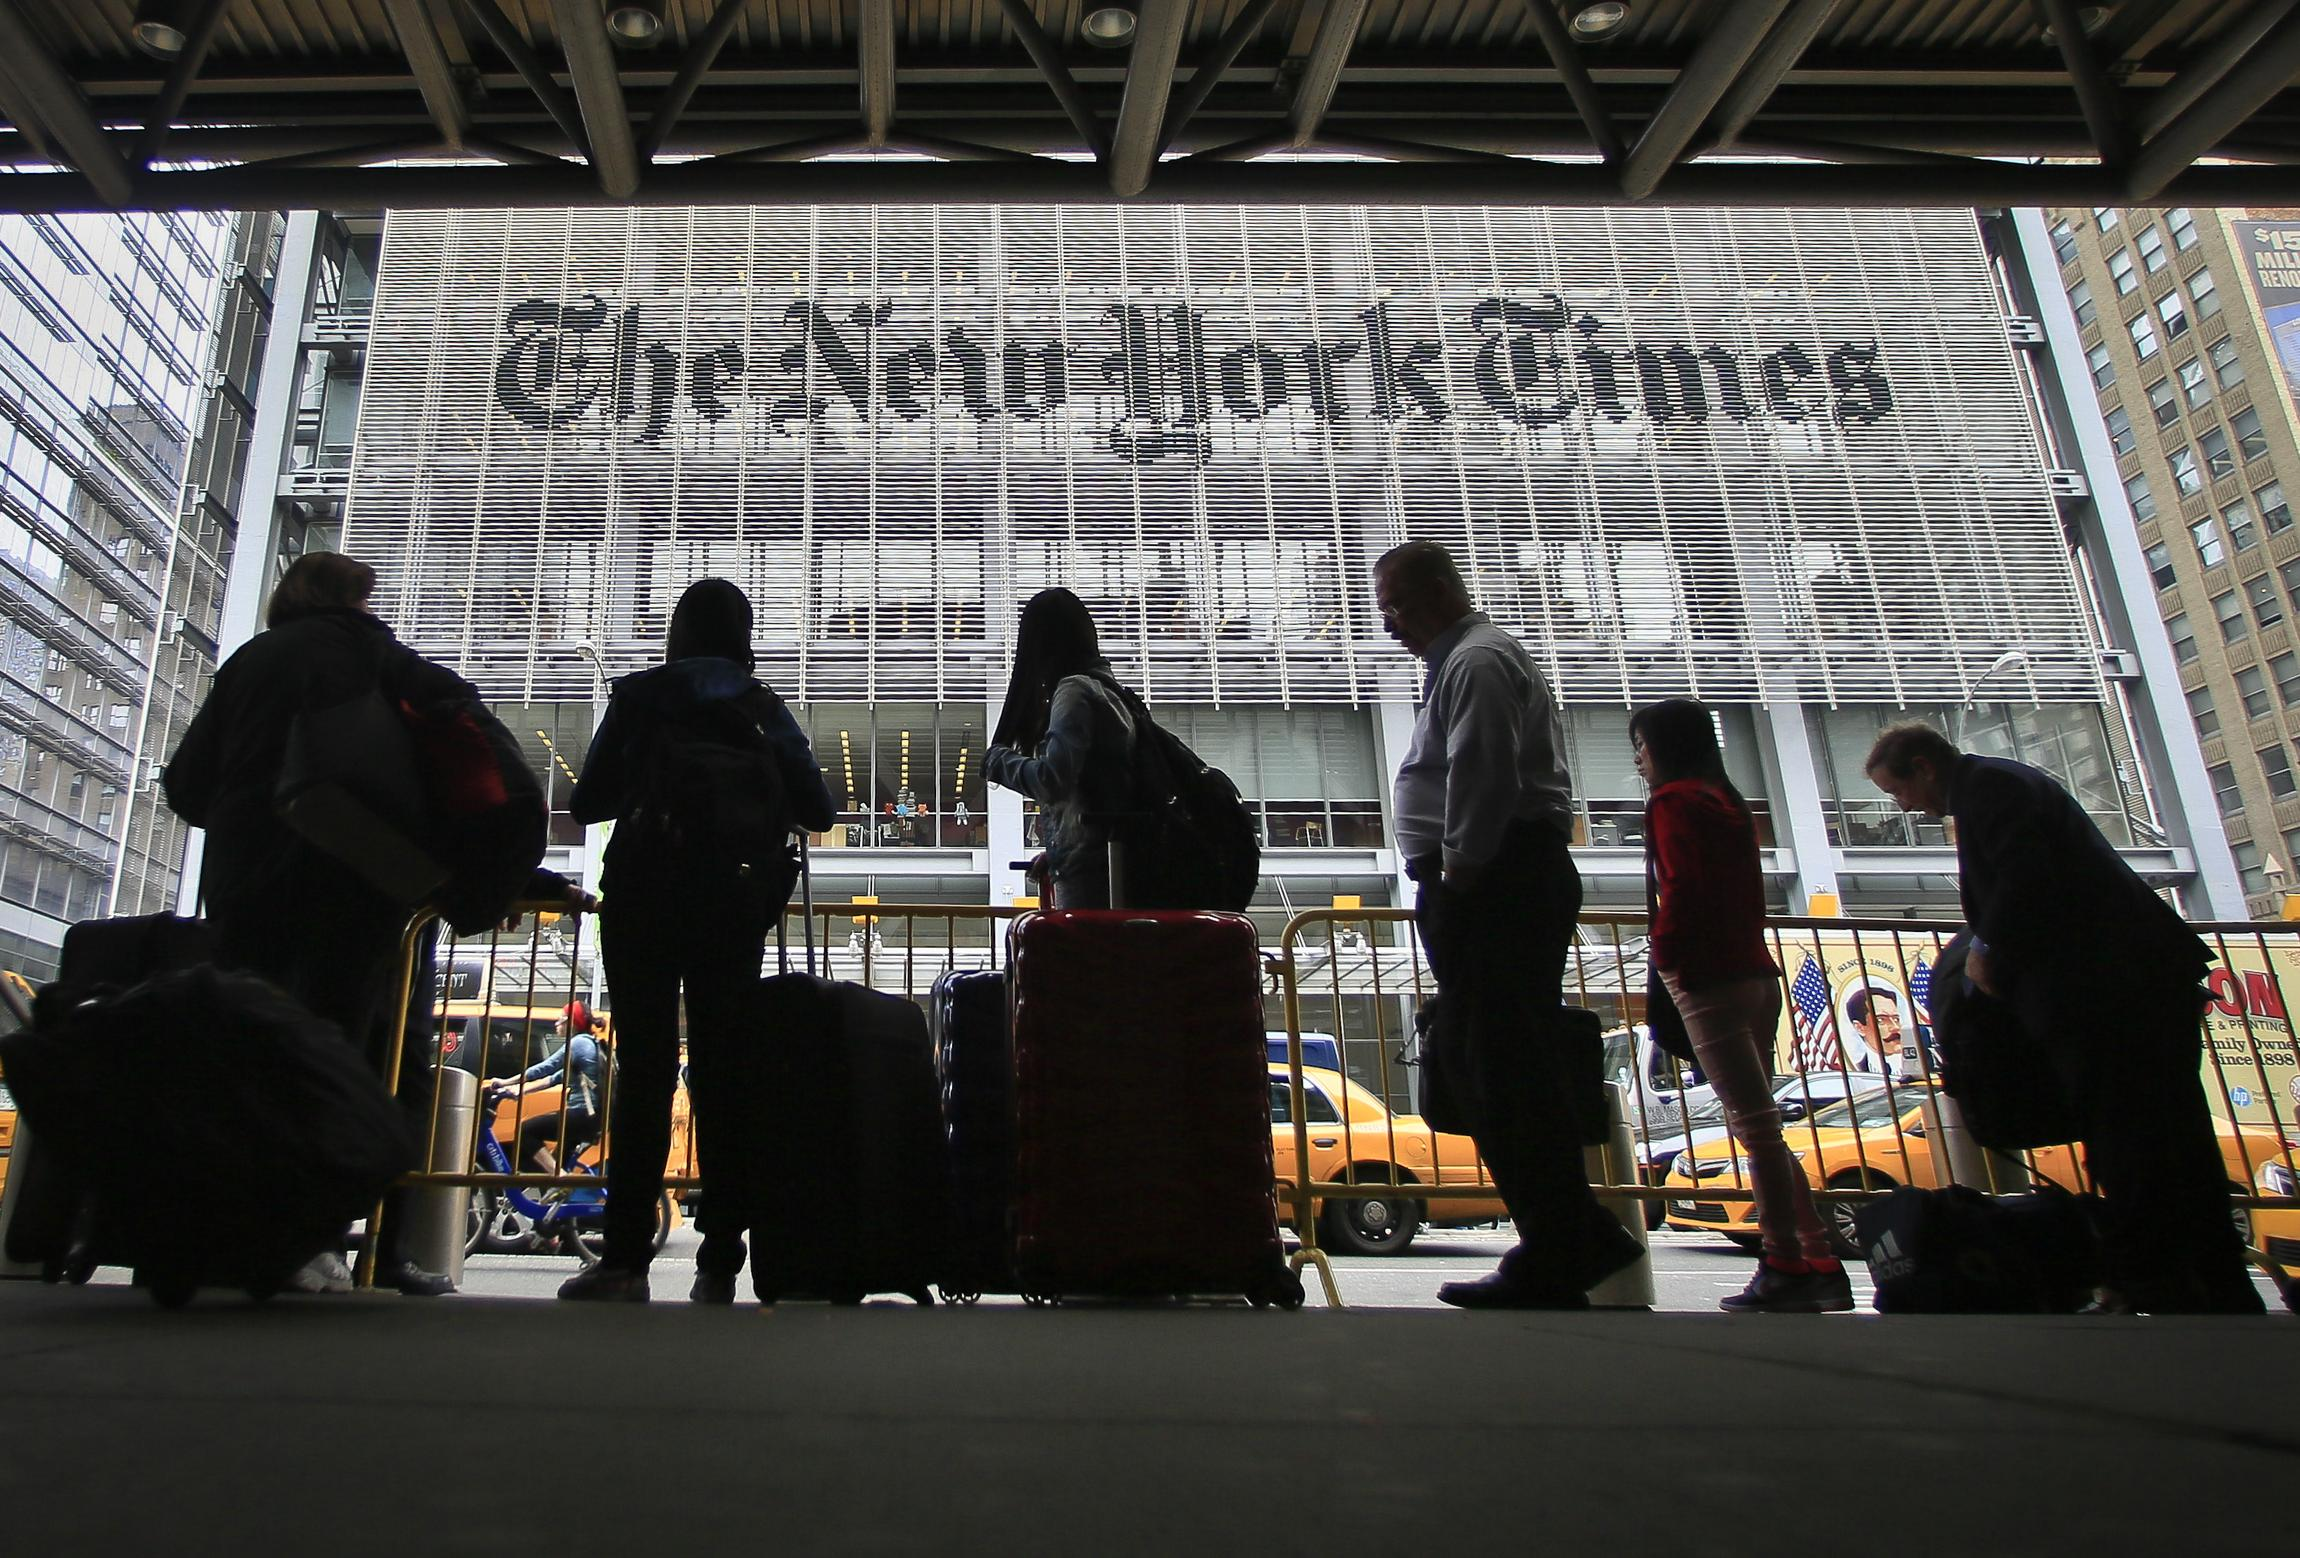 On Taxation of the 'Rich' vs. 'Workers', NYT Redefines Gullible